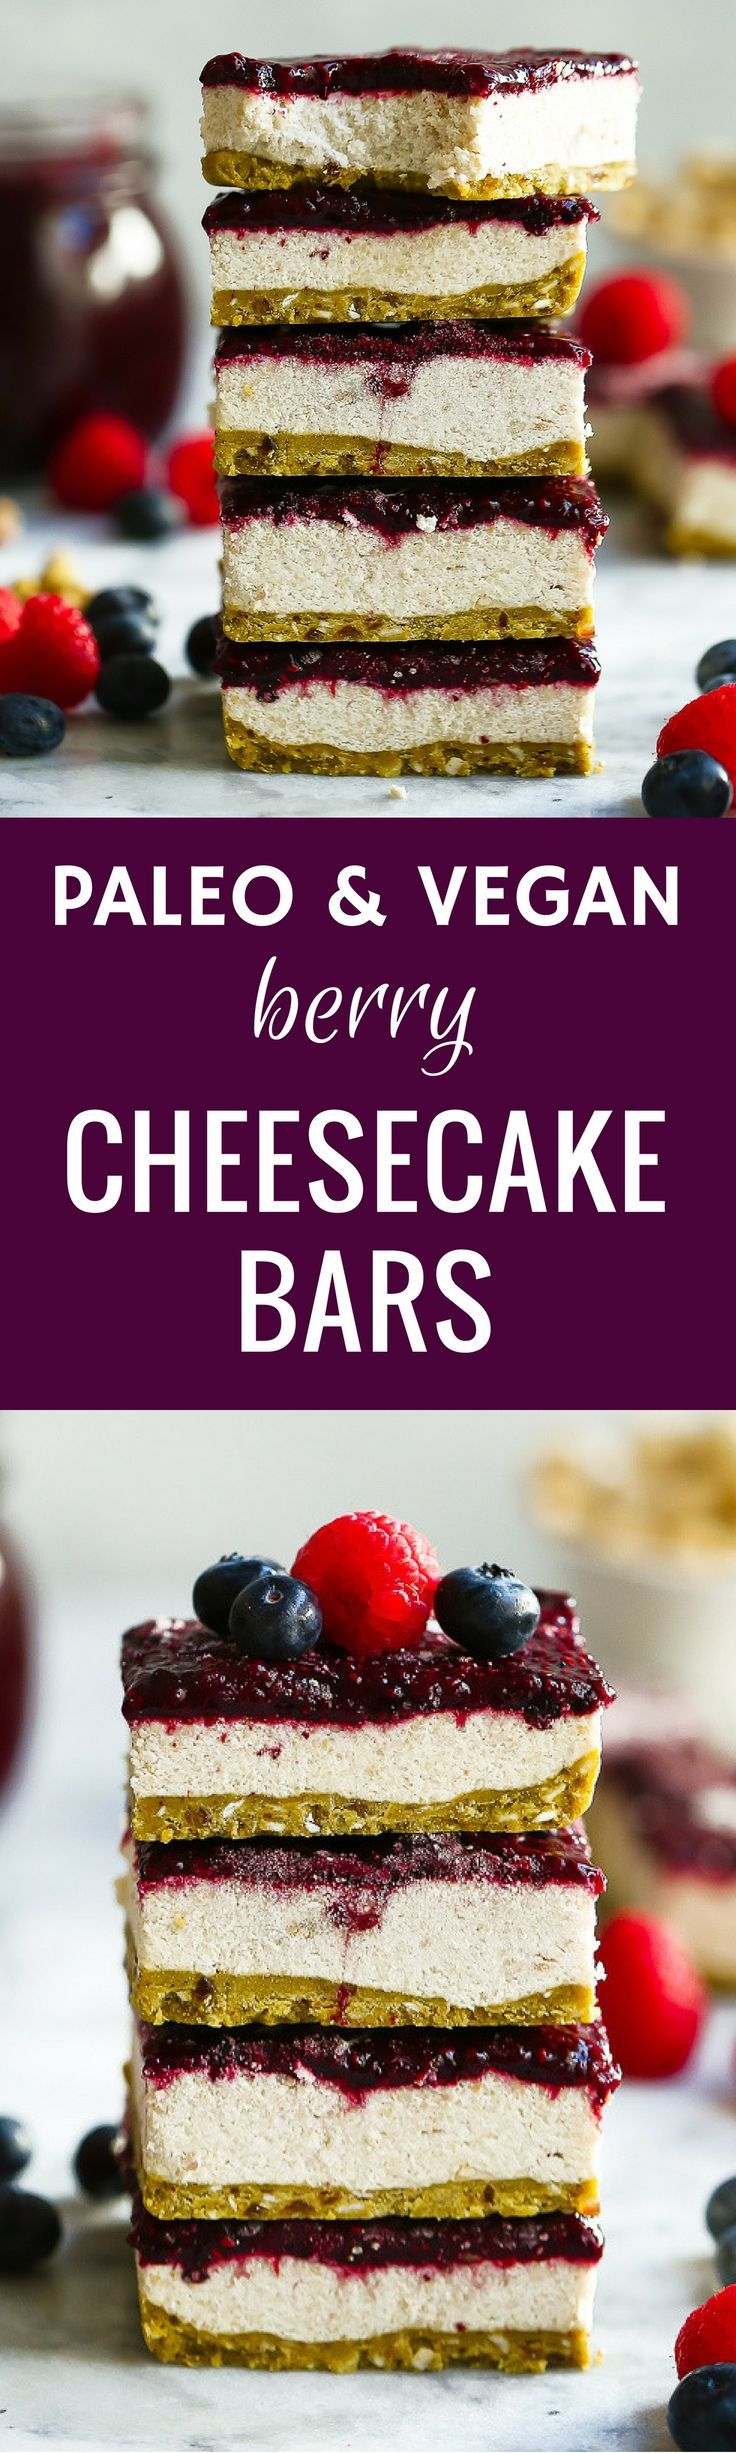 Paleo Vegan Berry Cheesecake Bars via @themovementmenu